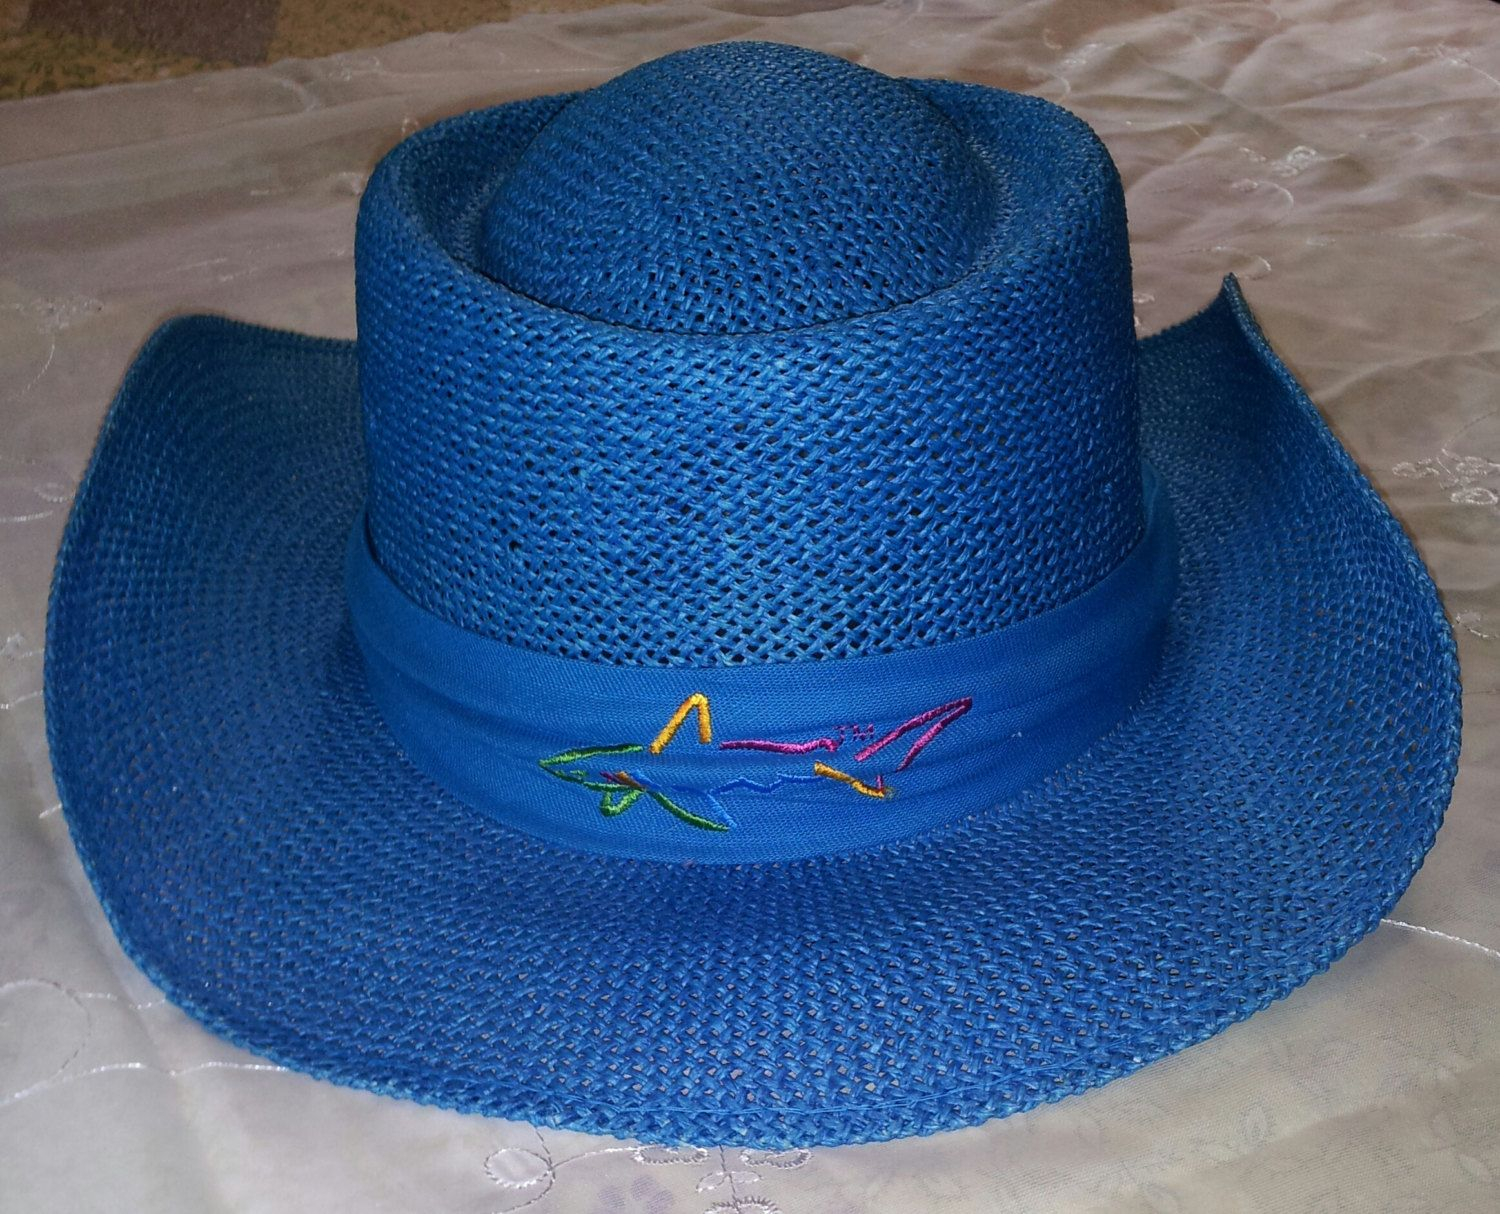 a80e56bc One of a Kind, Teal Colored Straw Hat WORN By GREG NORMAN In A Reebok